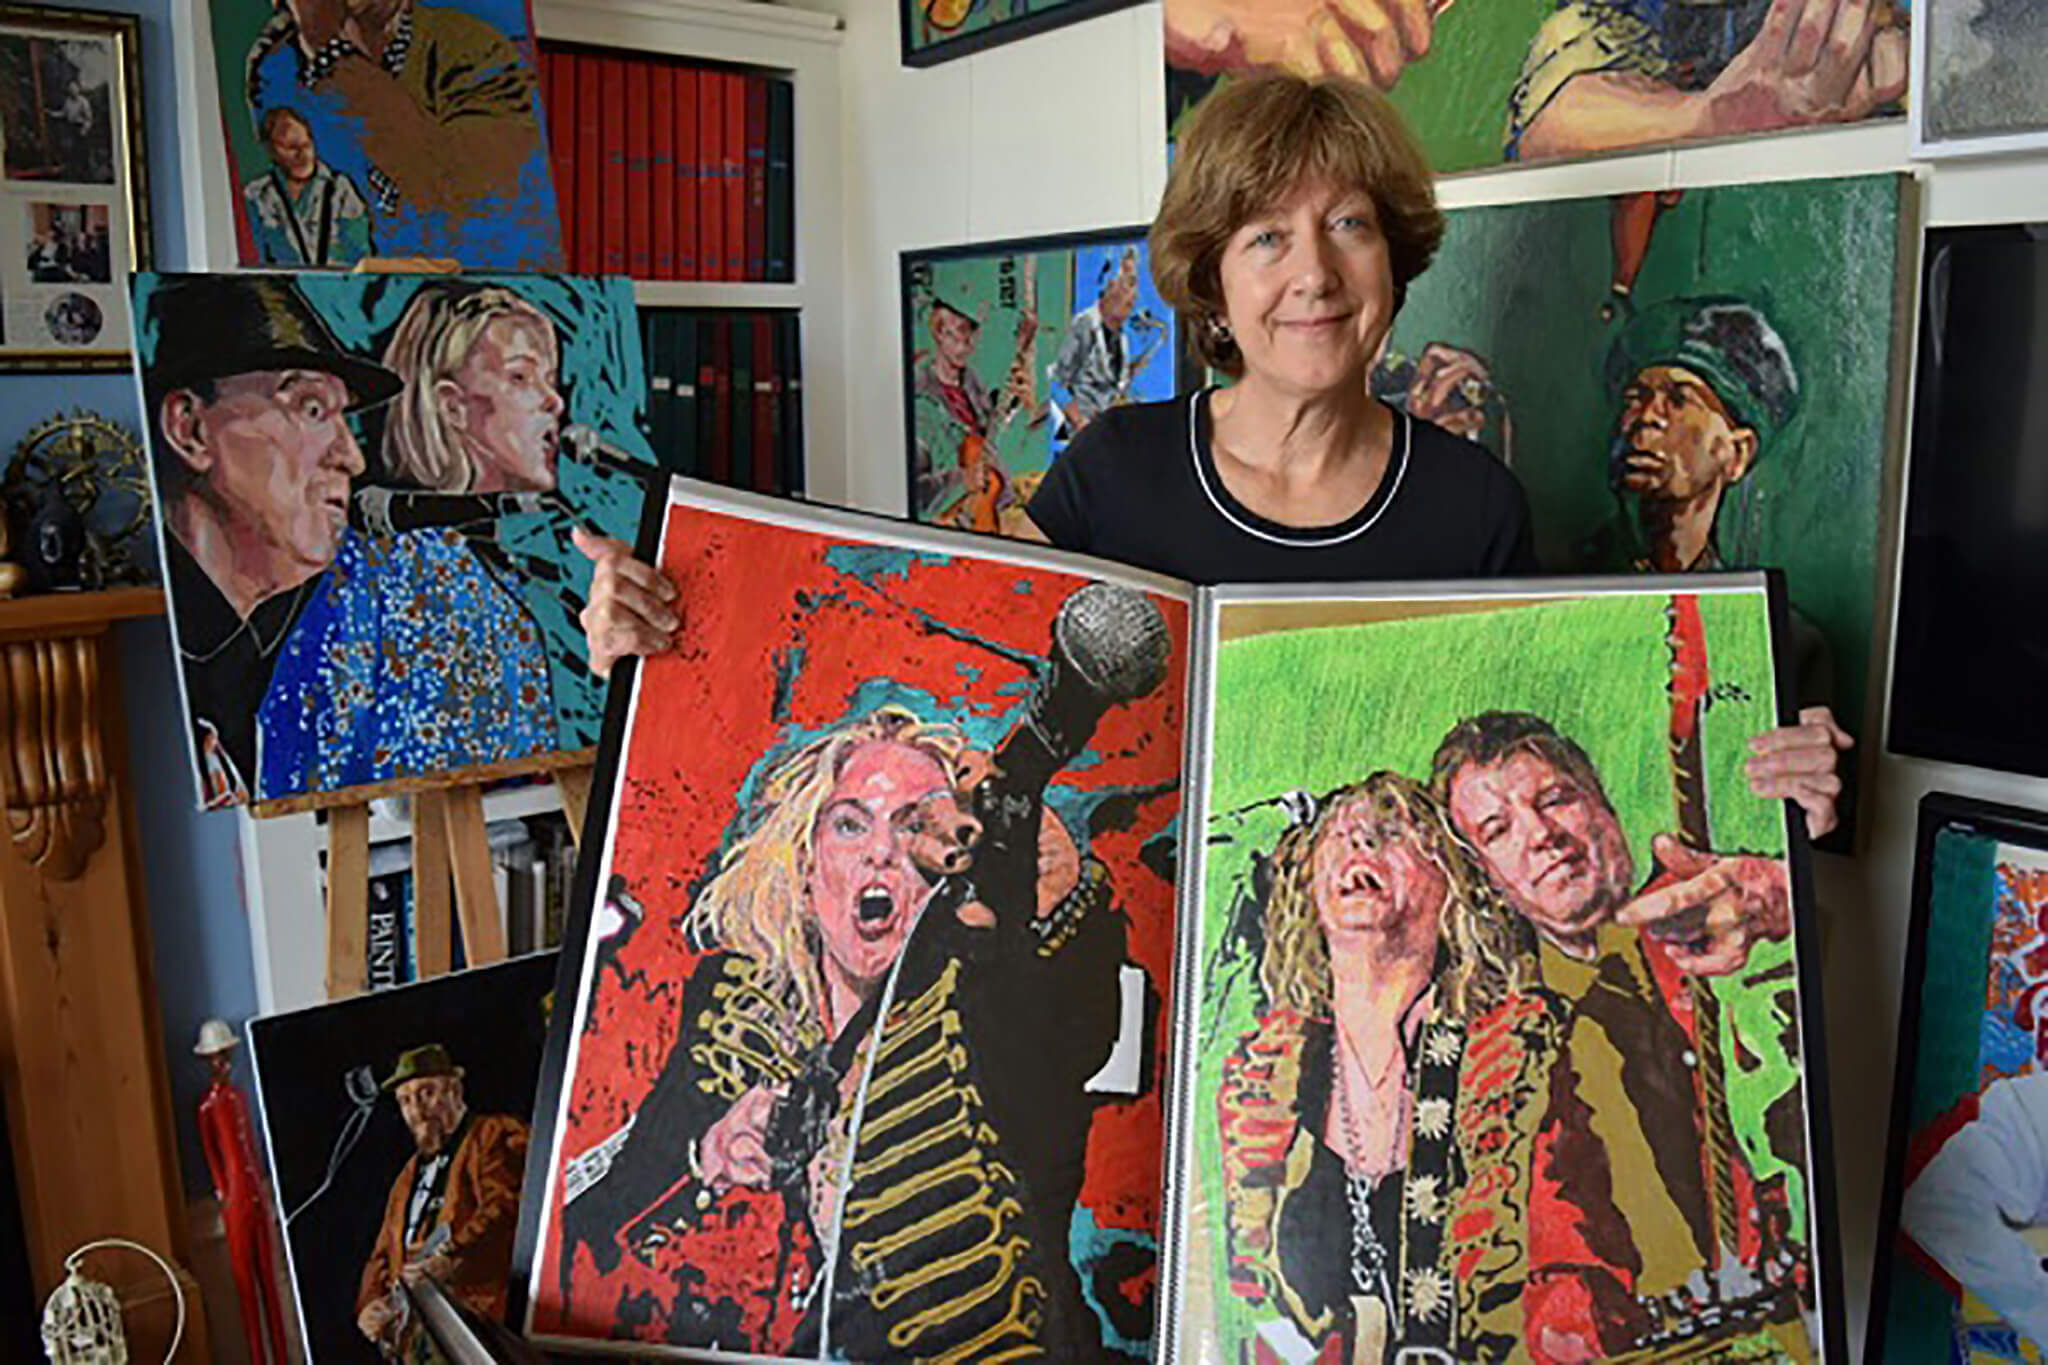 Artist Stella Tooth at BEAT open studios with her portraits. Photo Liz Jenner.